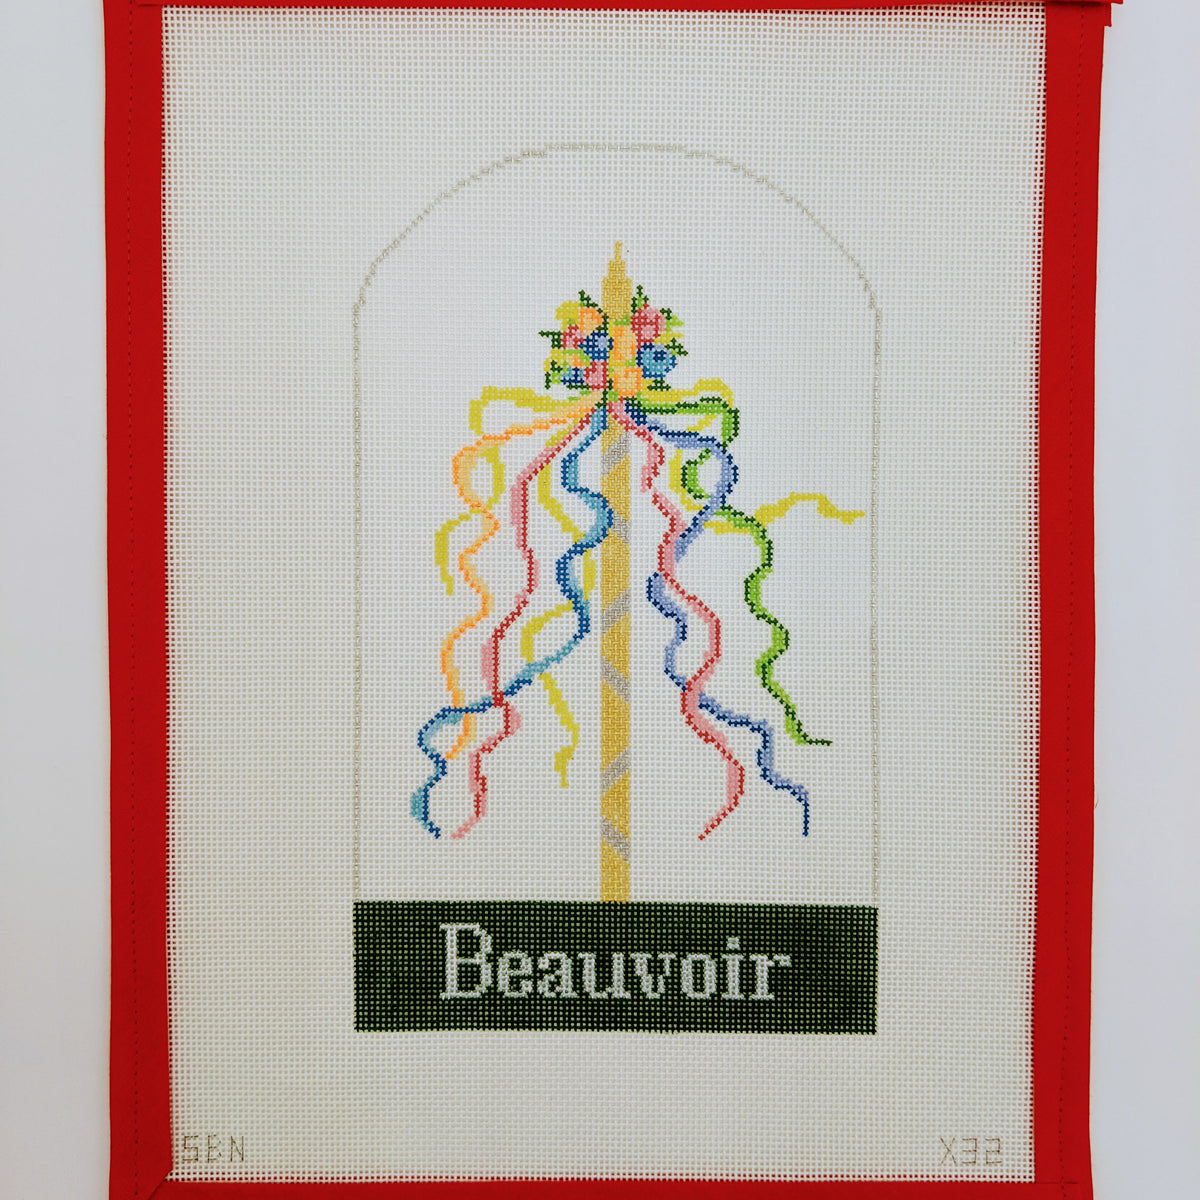 Beauvoir Maypole ornament